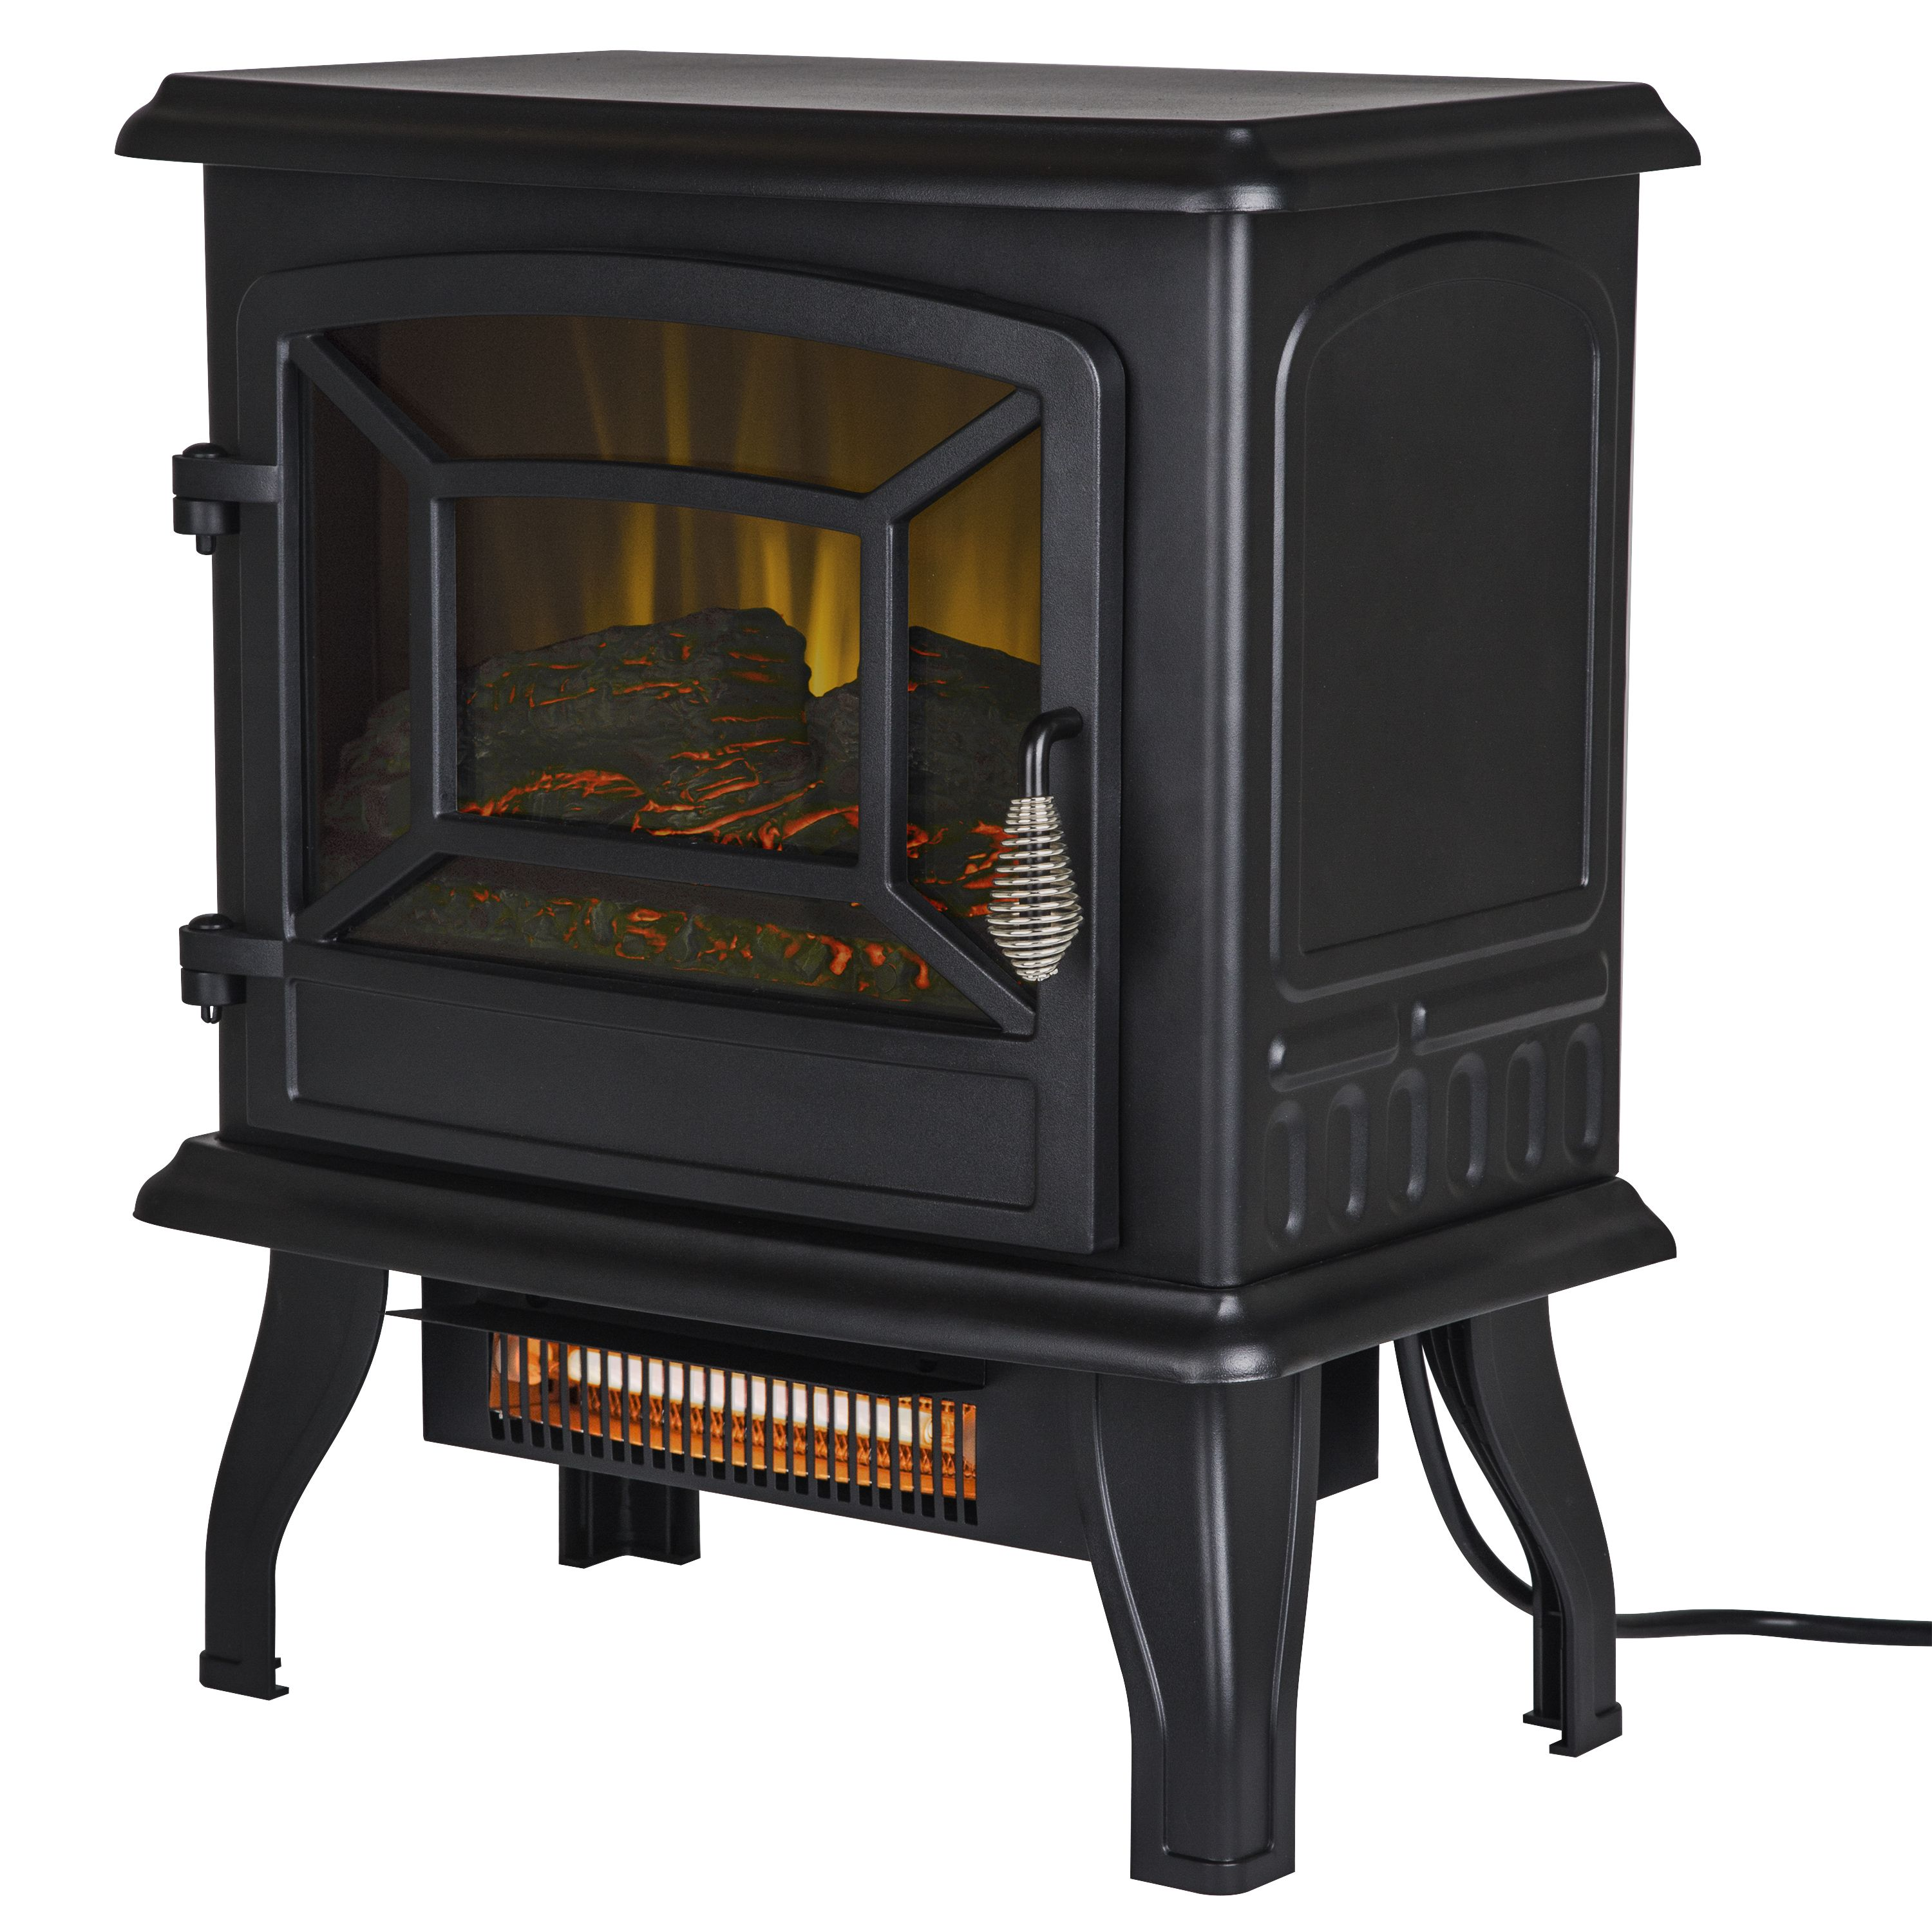 Pleasant Hearth Infrared Electric Stove 2 Stage Heater 17 In In 2020 Freestanding Fireplace Electric Stove Heaters Electric Stove